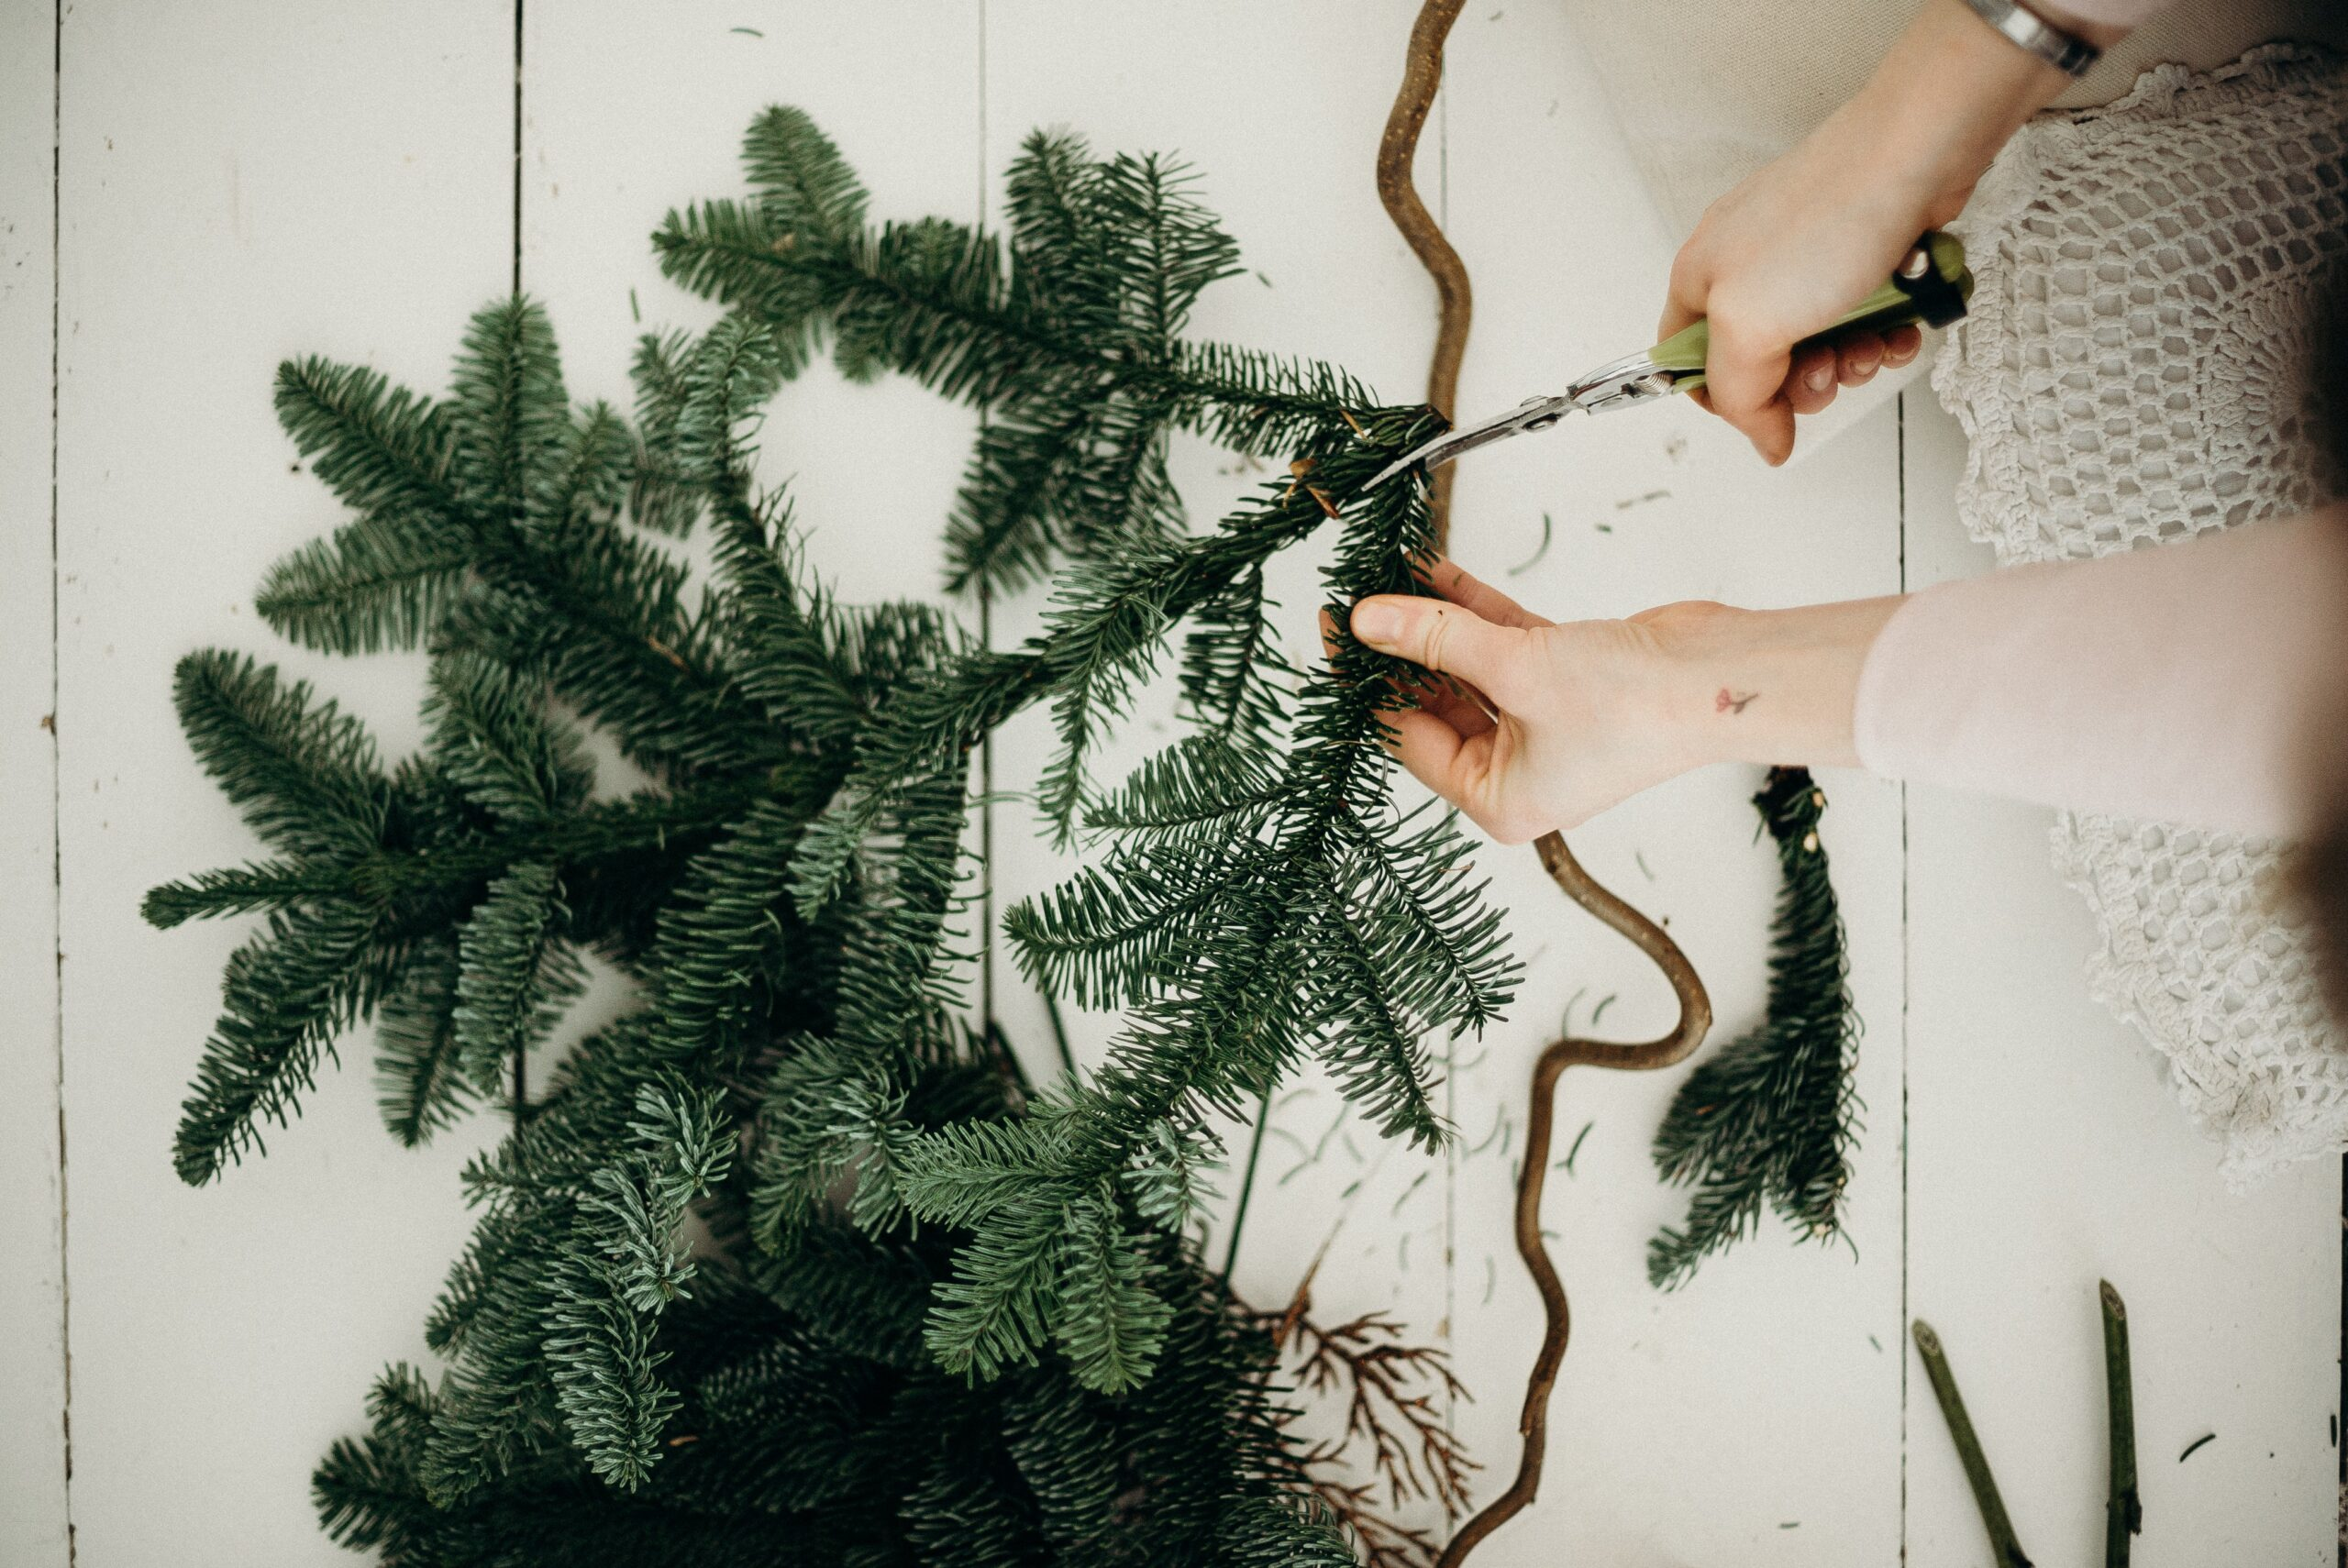 Best Practices for Growing Your Own Christmas Tree